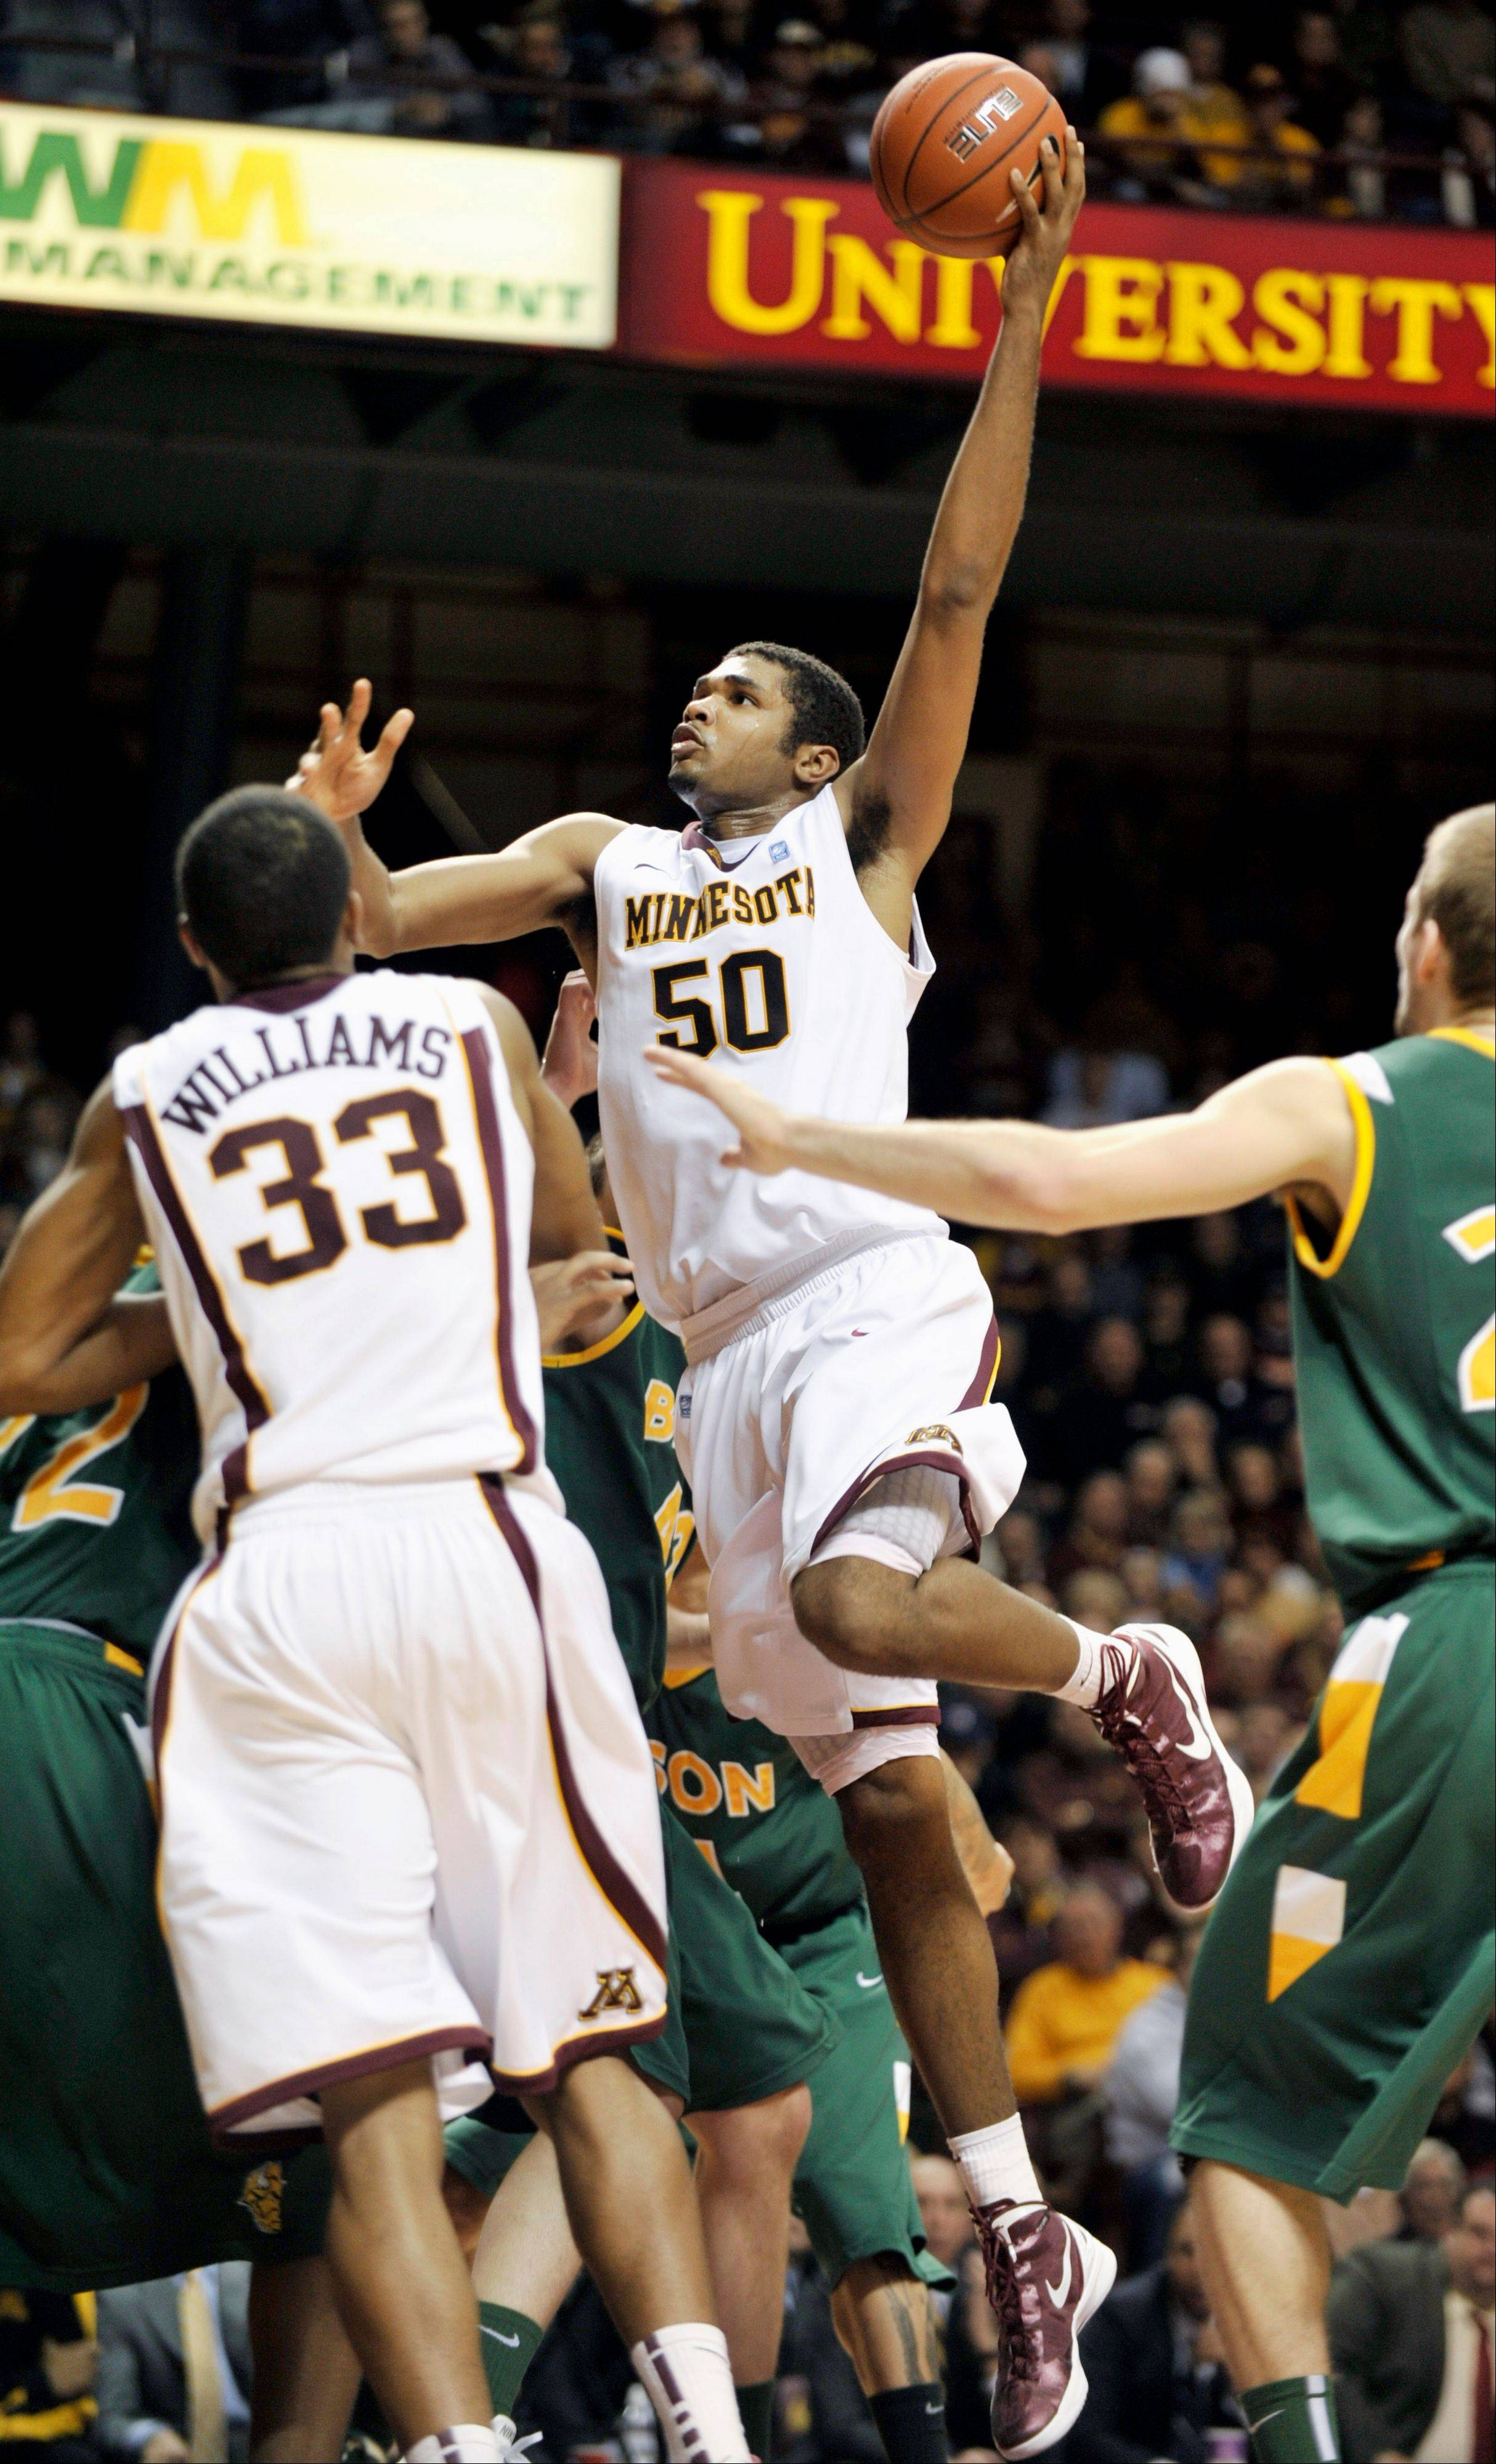 Minnesota�s Ralph Sampson III gets off a shot during the second half Thursday gainst North Dakota State.